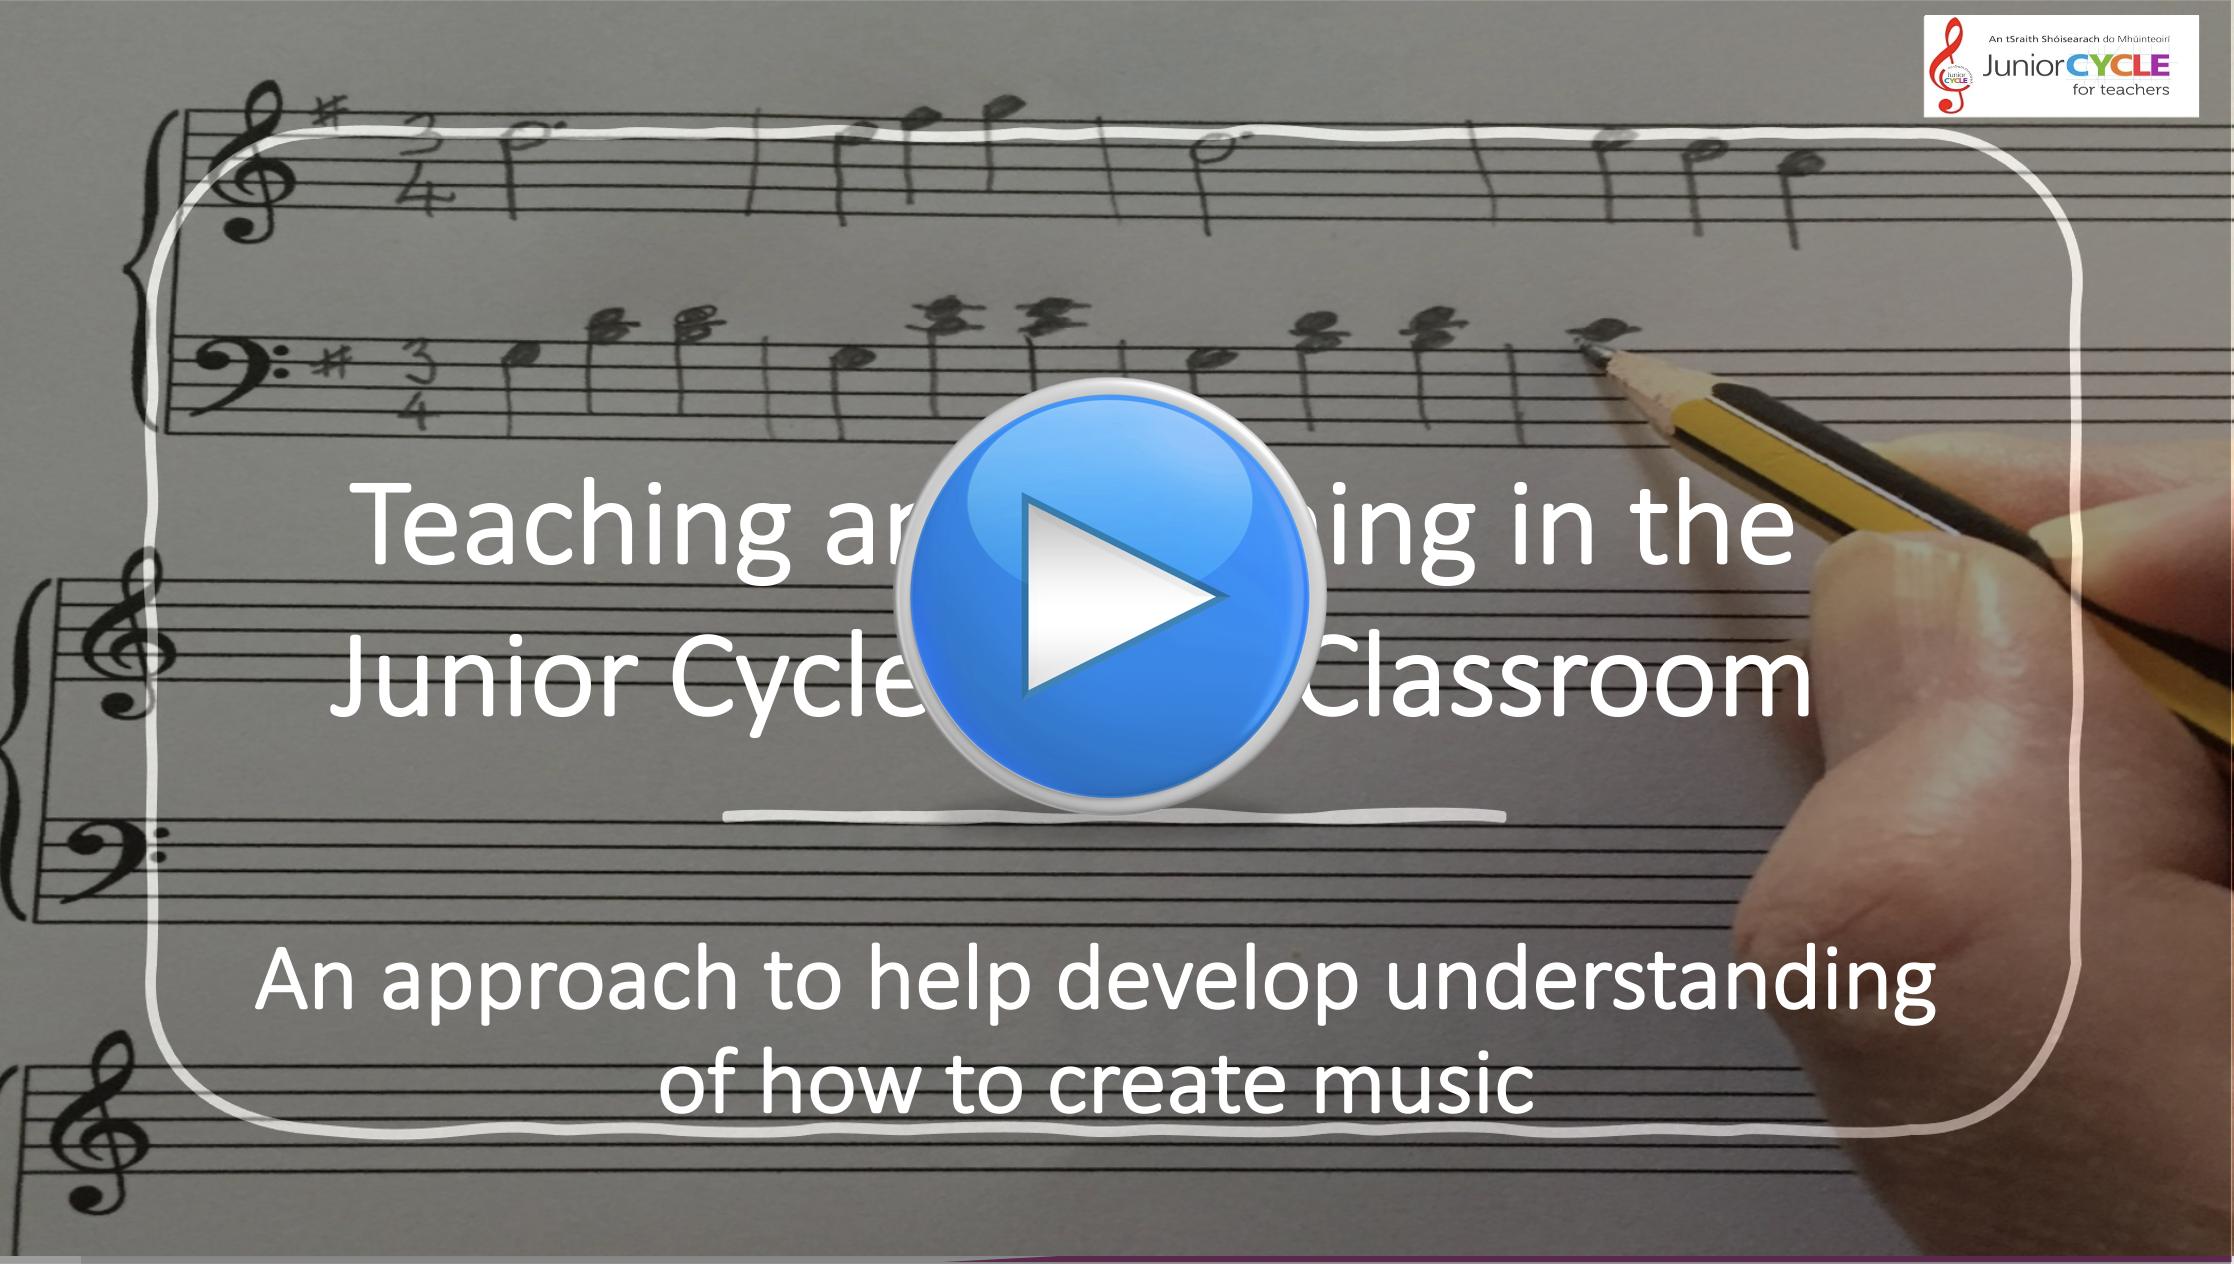 Online Learning - An Approach to Help Develop Understanding of How to Create Music